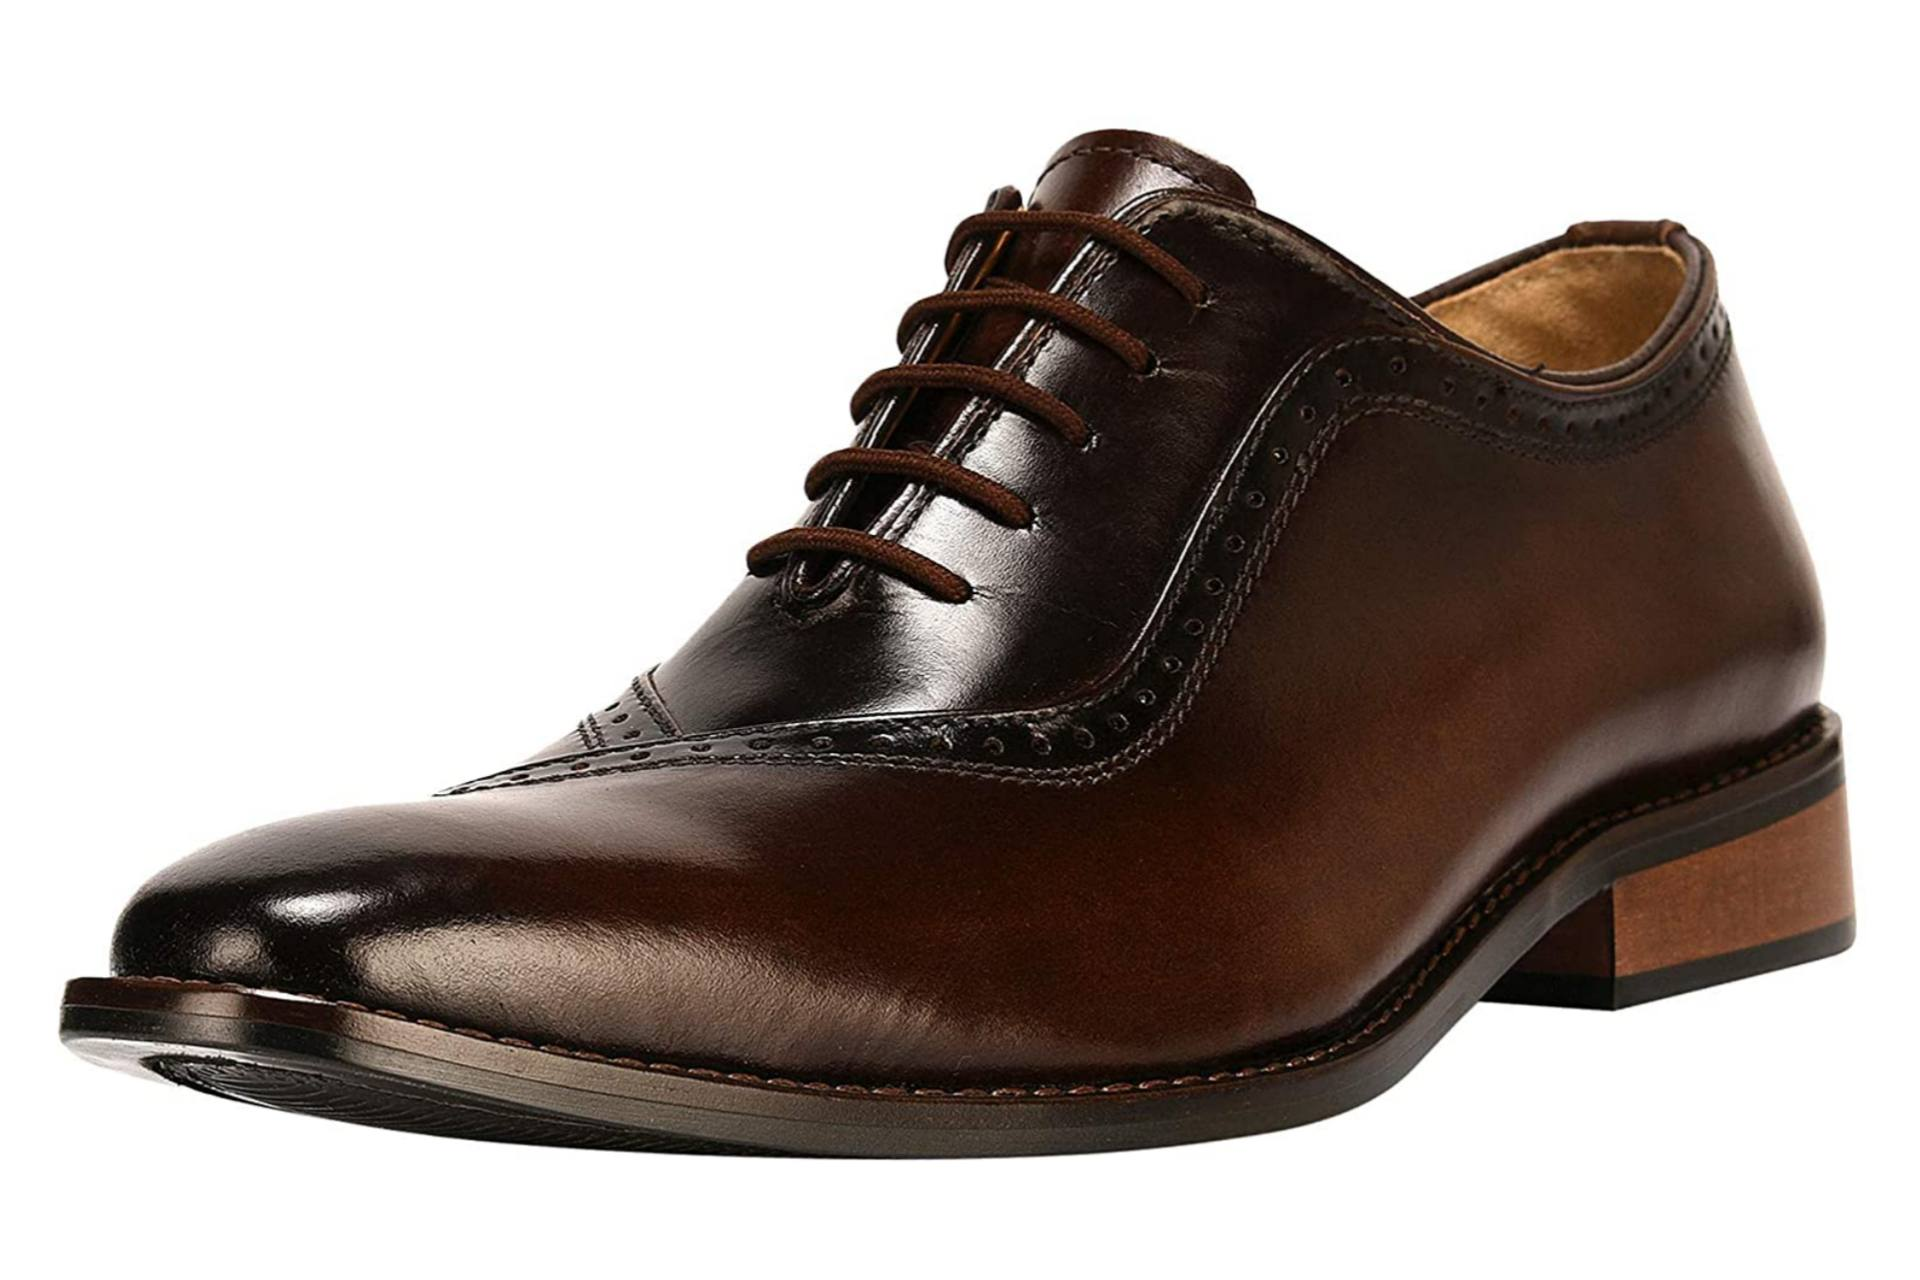 Men's Oxford shoe for work